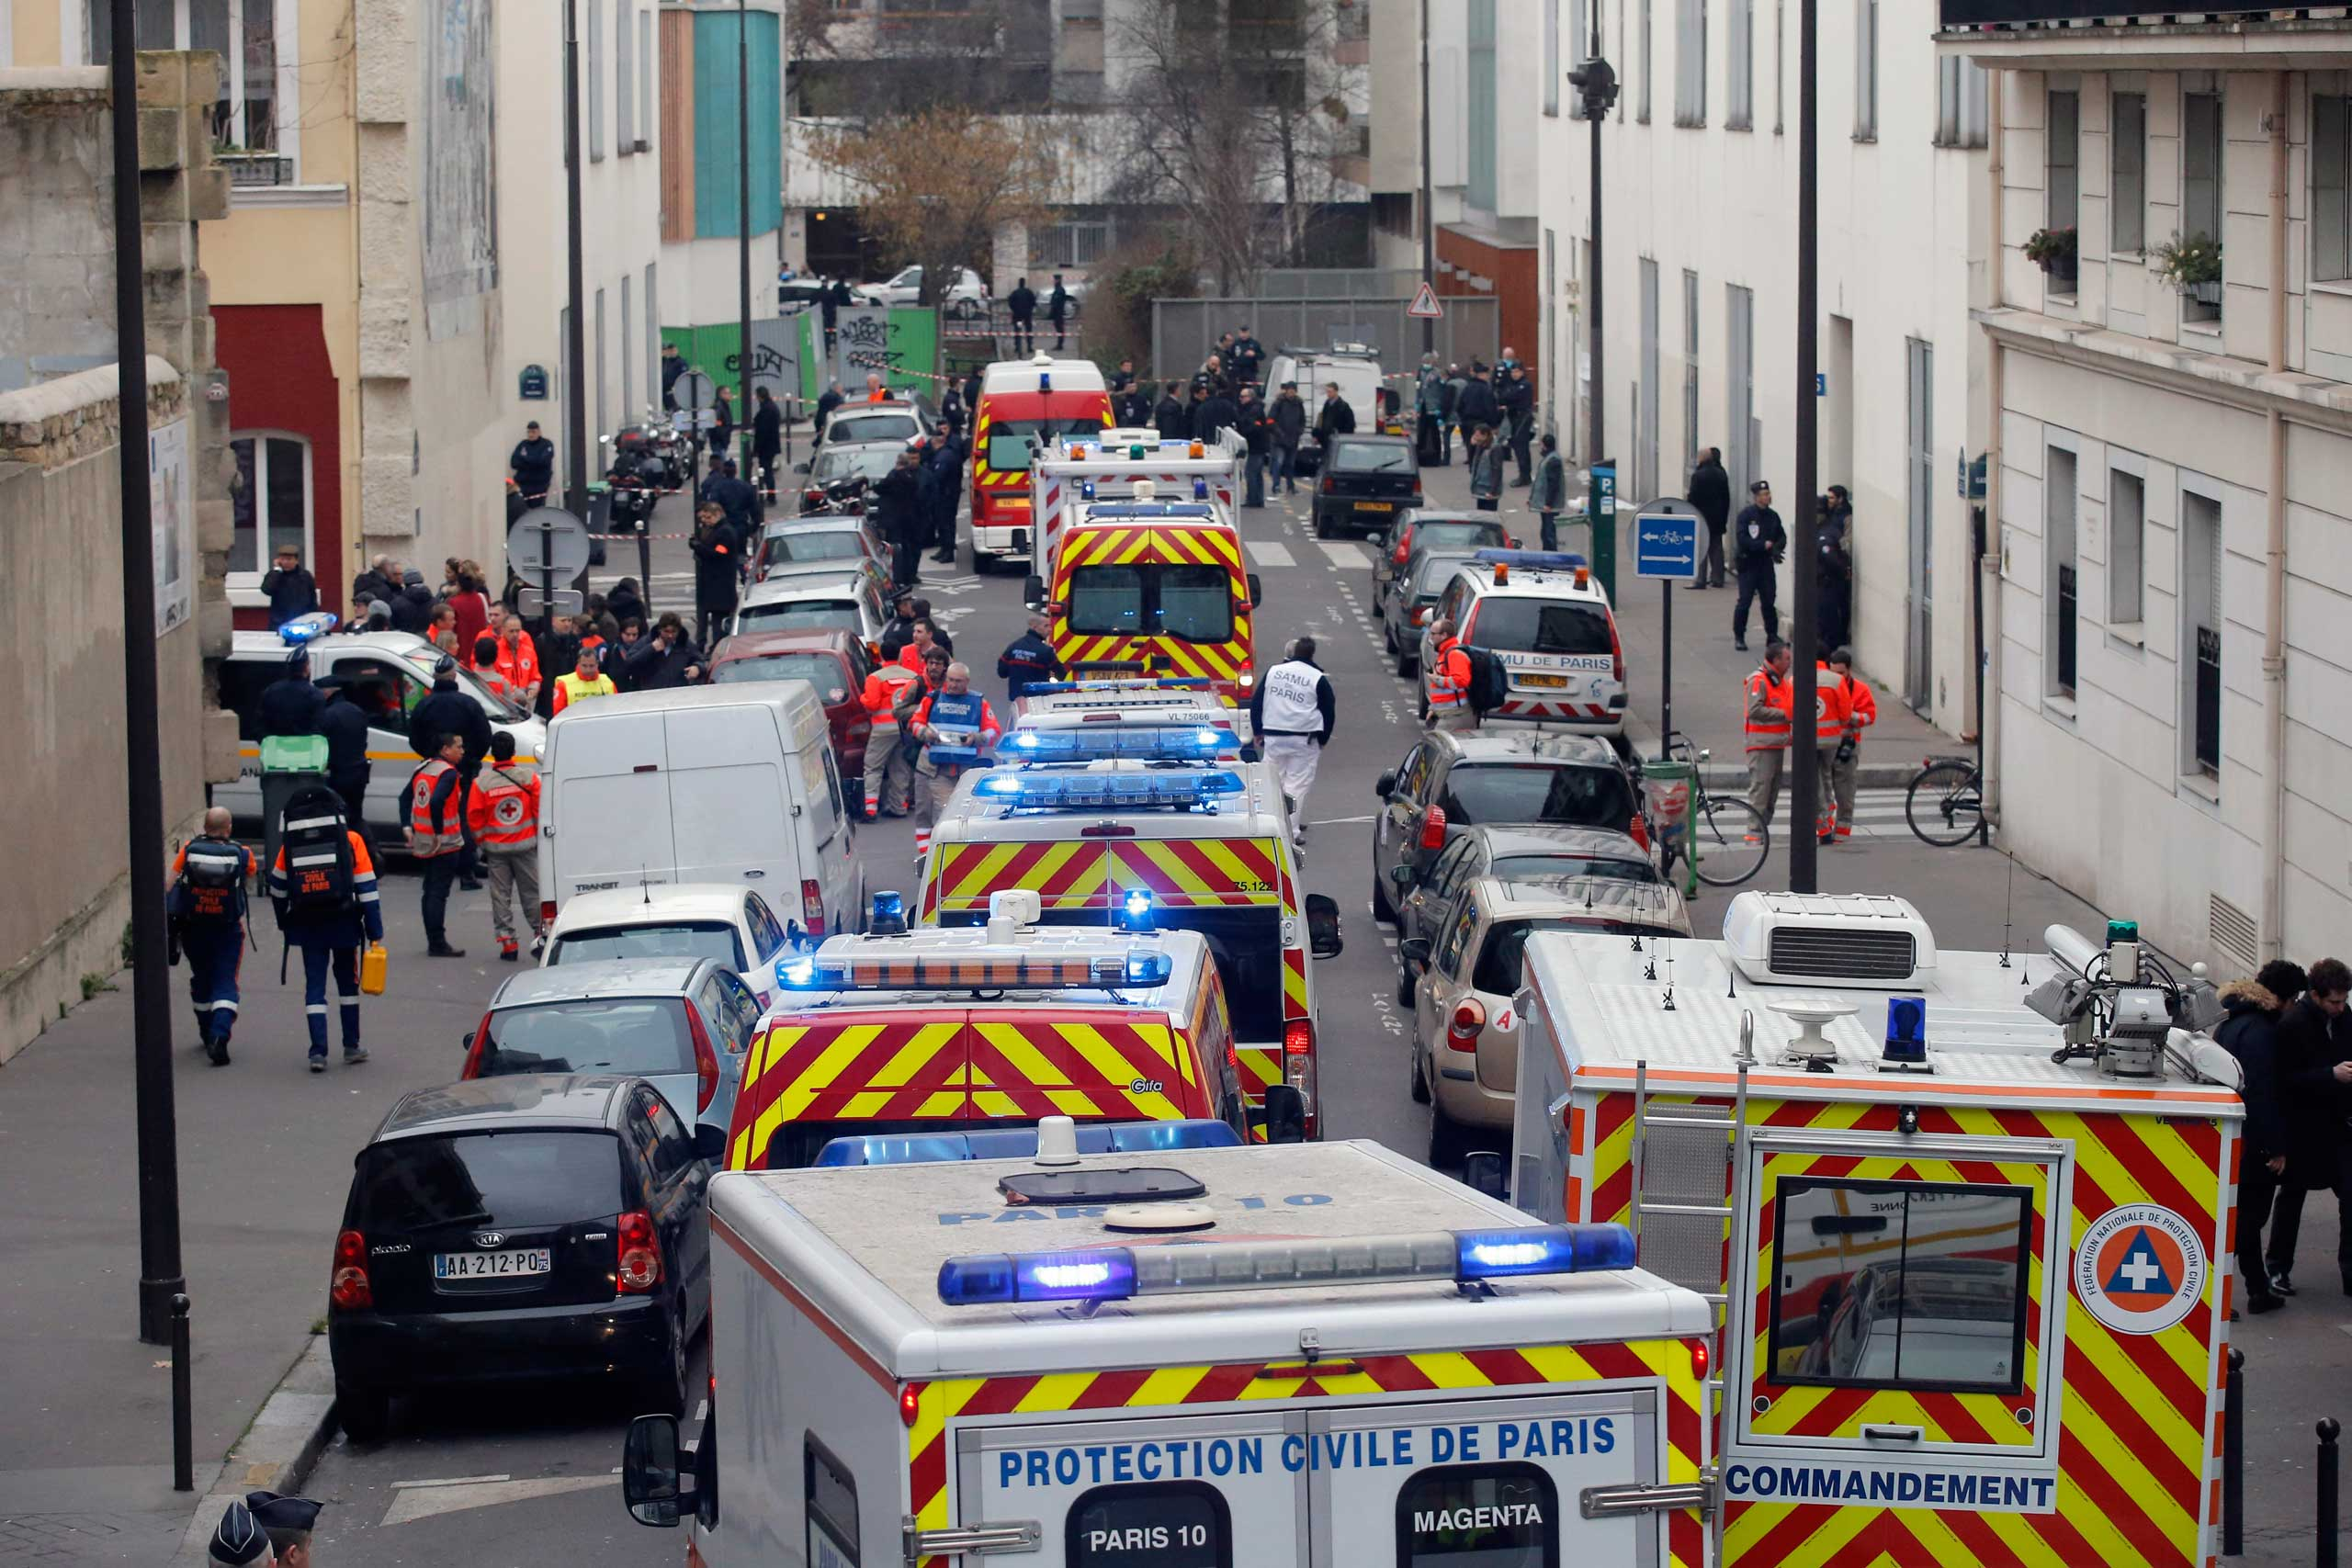 Ambulances gather in the street outside the French satirical newspaper Charlie Hebdo's office, in Paris, Jan. 7, 2015.